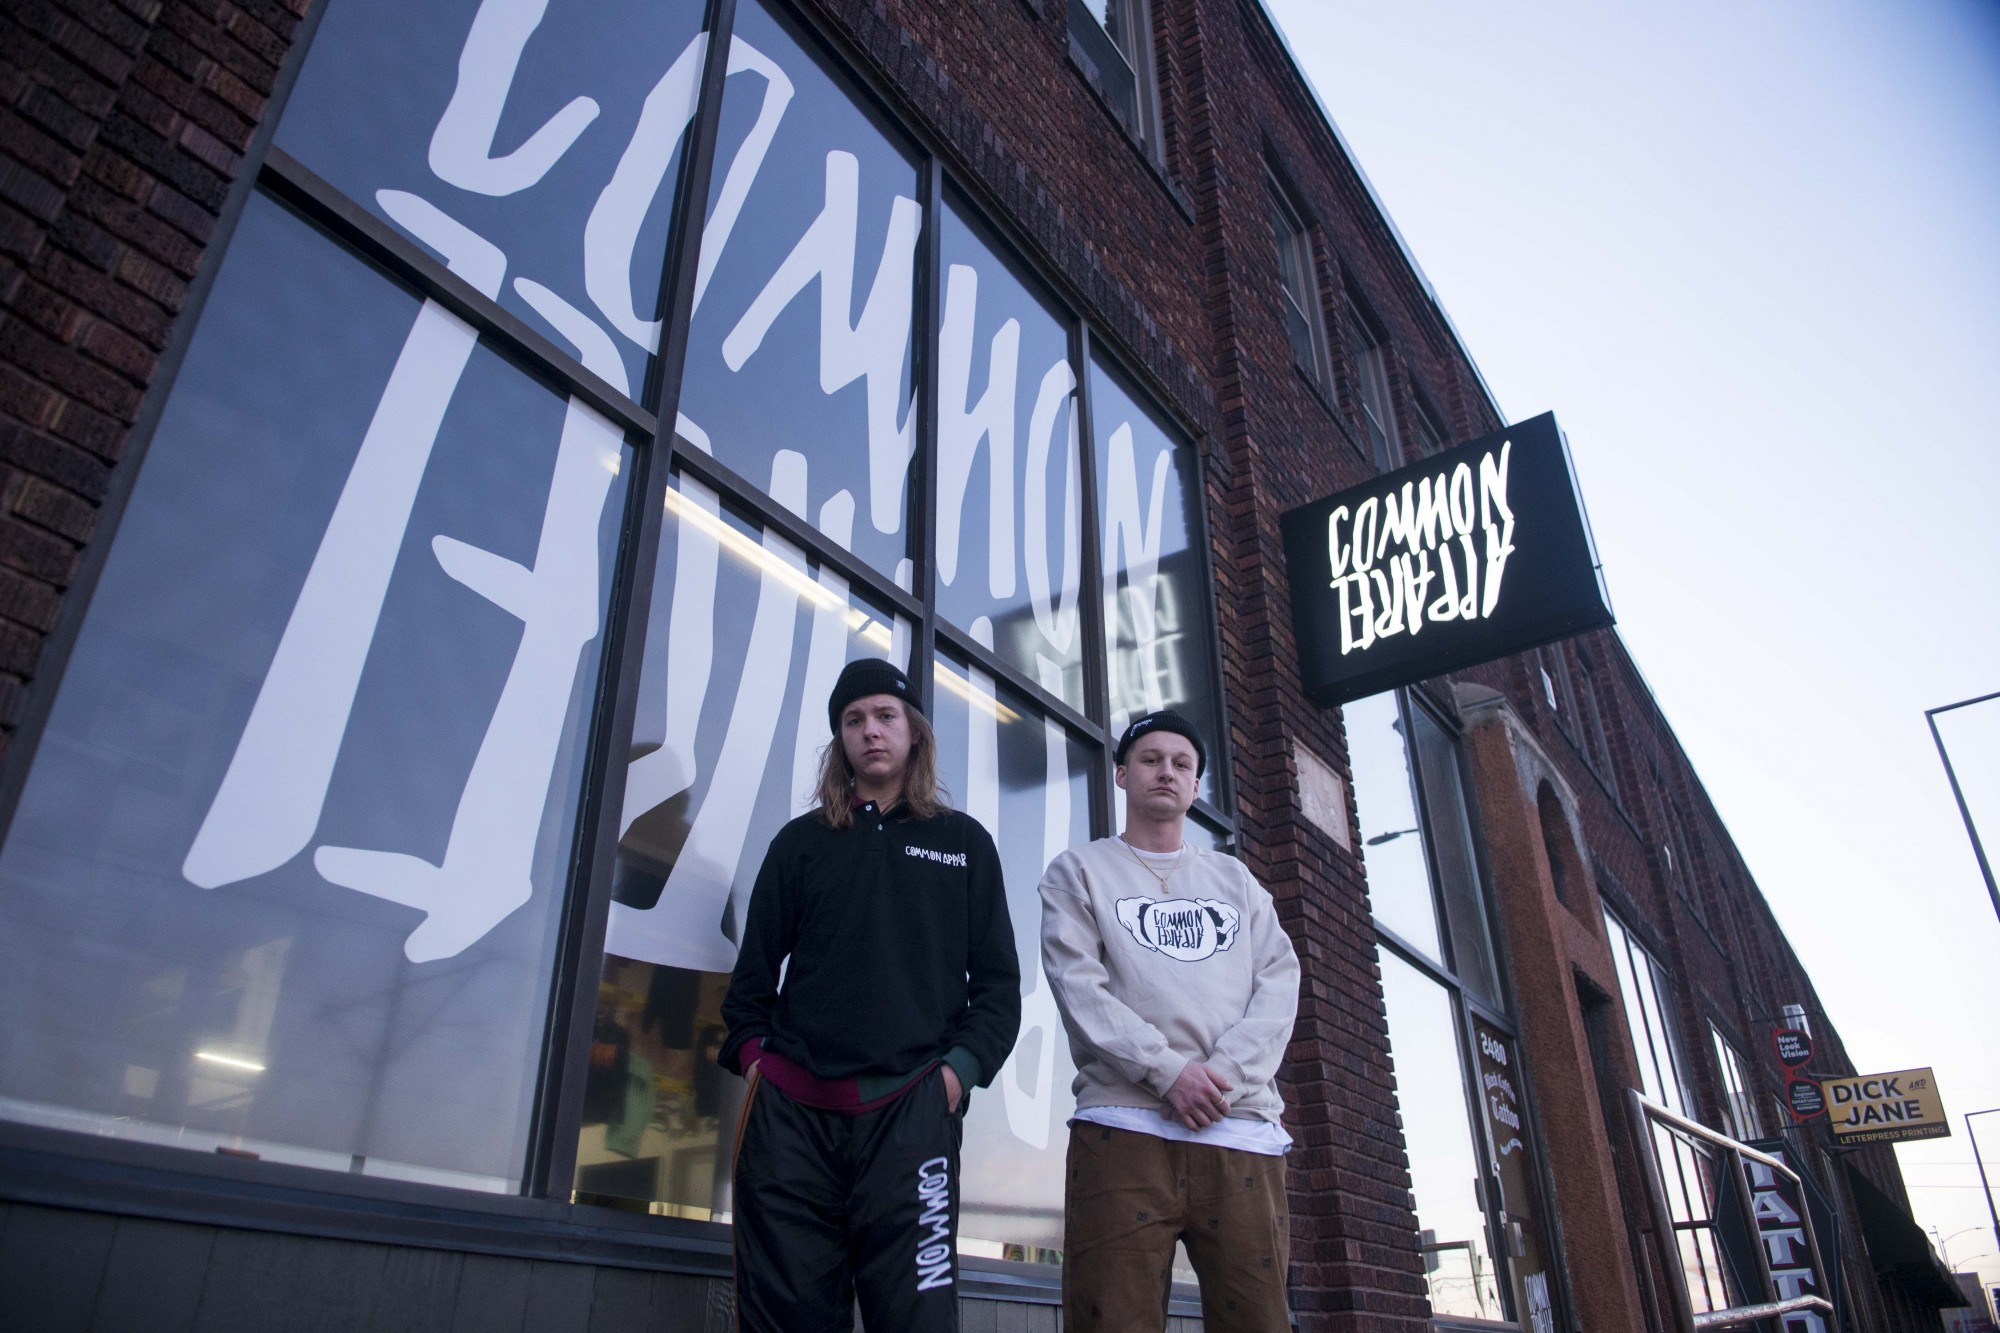 Nate Blomquist, left, and Colton Allen, right, who own the apparel shop